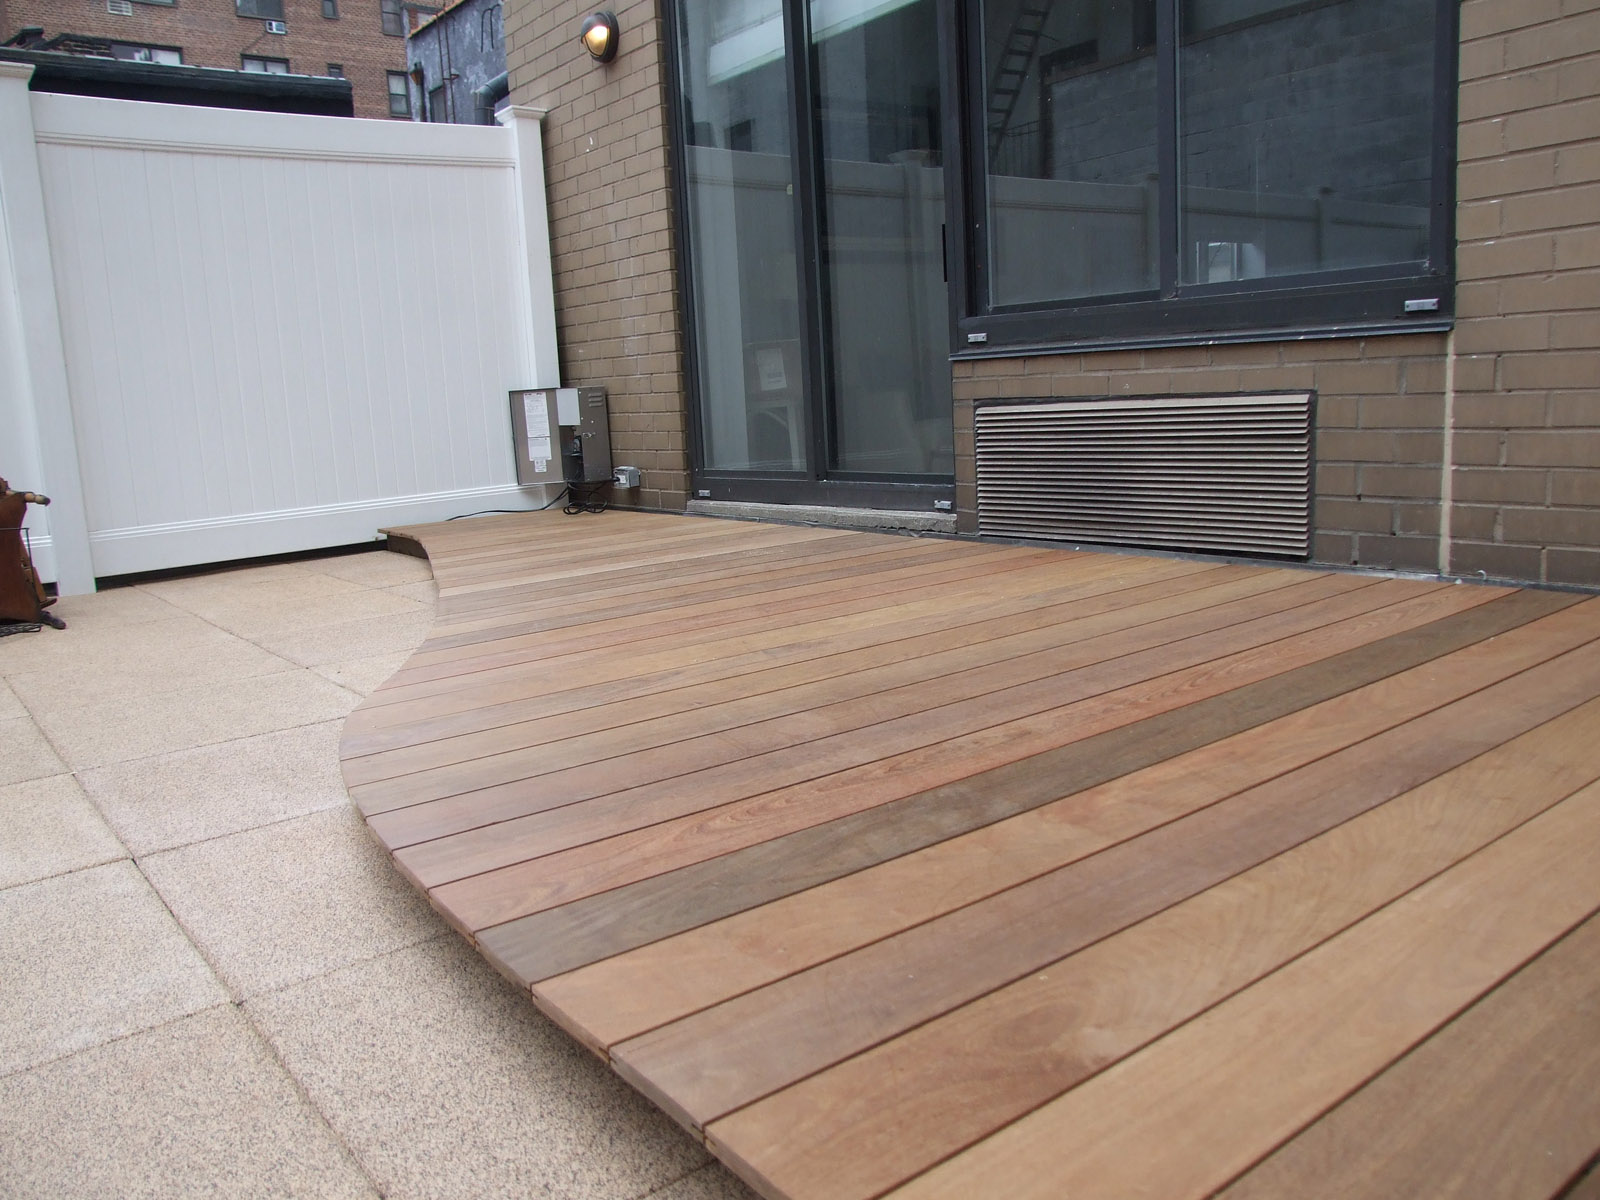 ... Custom Designed Ipe Wood Deck By All Decked Out NYC